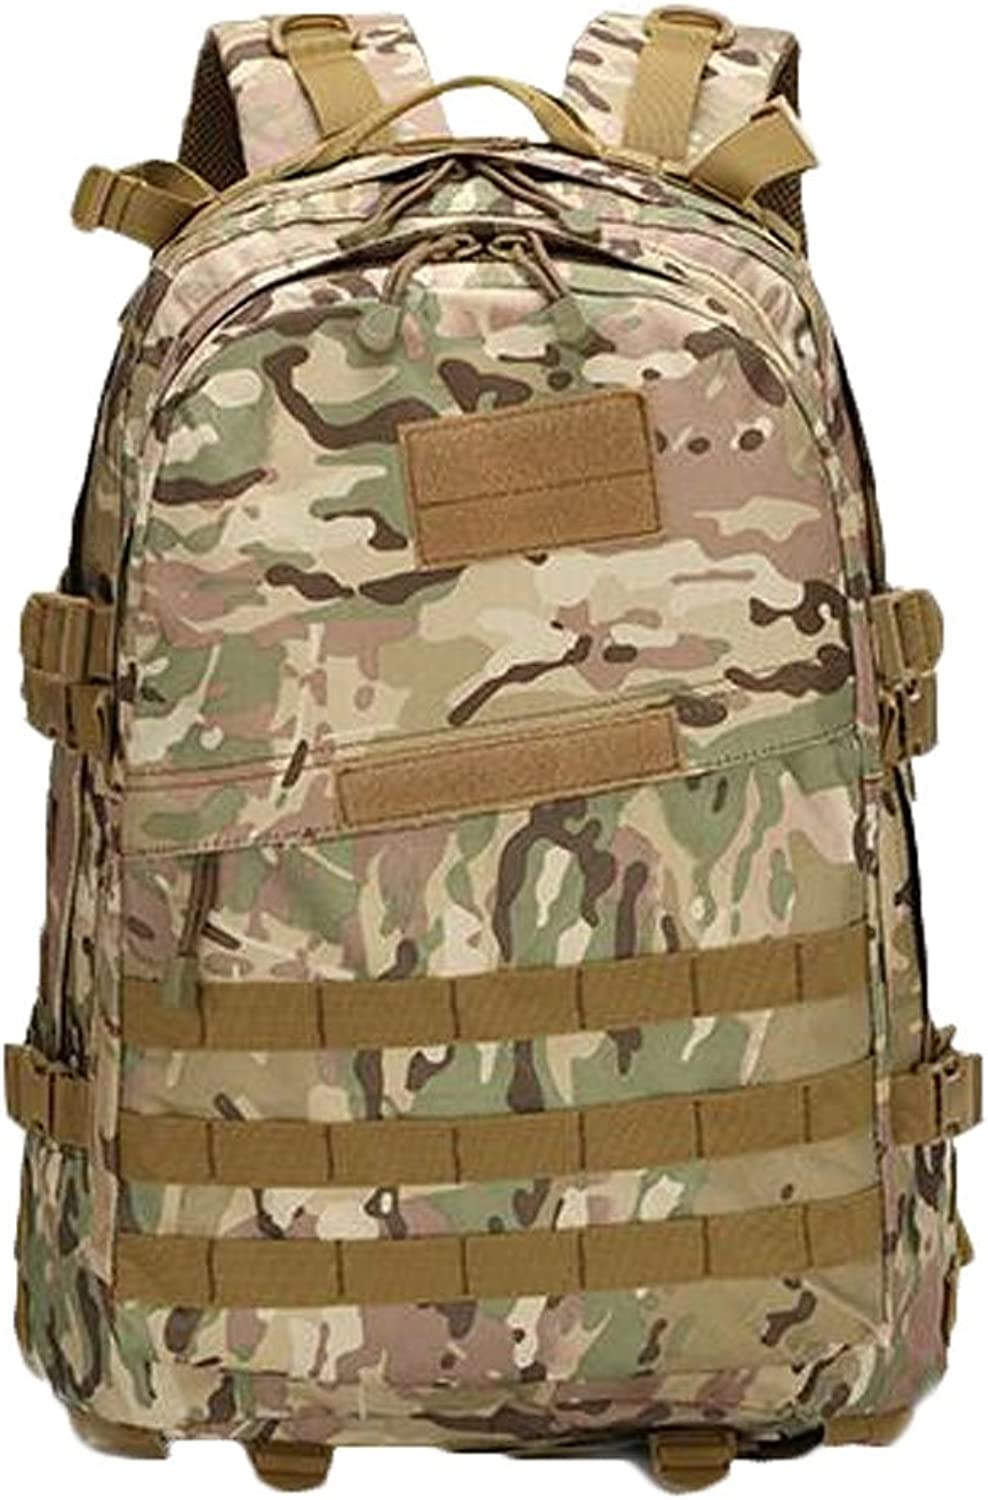 Camouflage Mountaineering Backpack for Men and Women Hiking Backpack